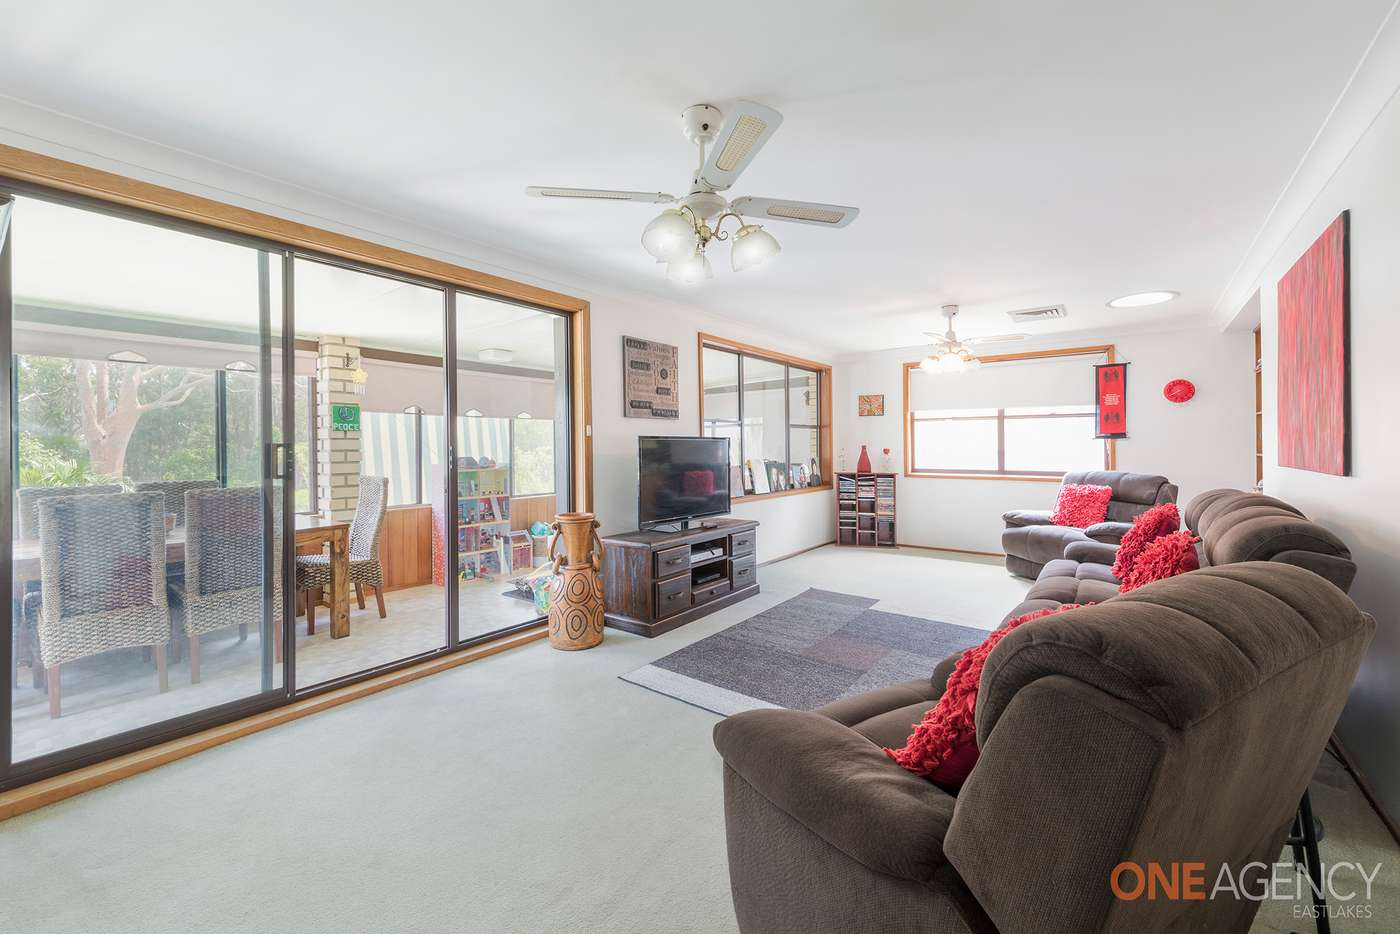 Sixth view of Homely house listing, 10 Omaru Close, Nords Wharf NSW 2281